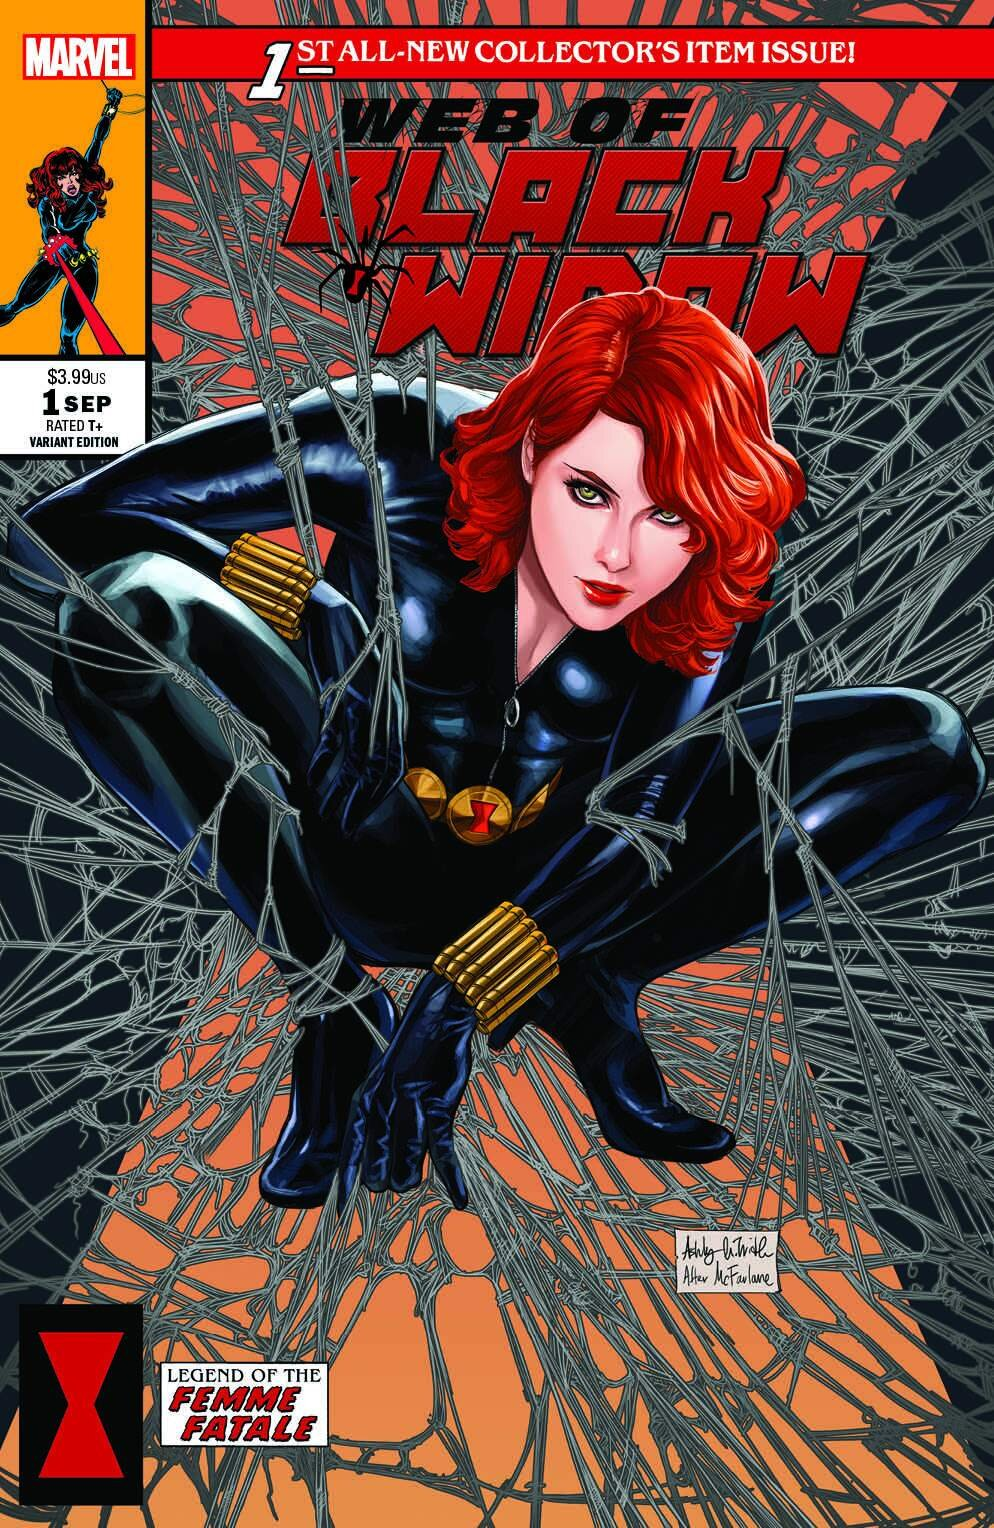 Web Of Black Widow #1 (Witter)